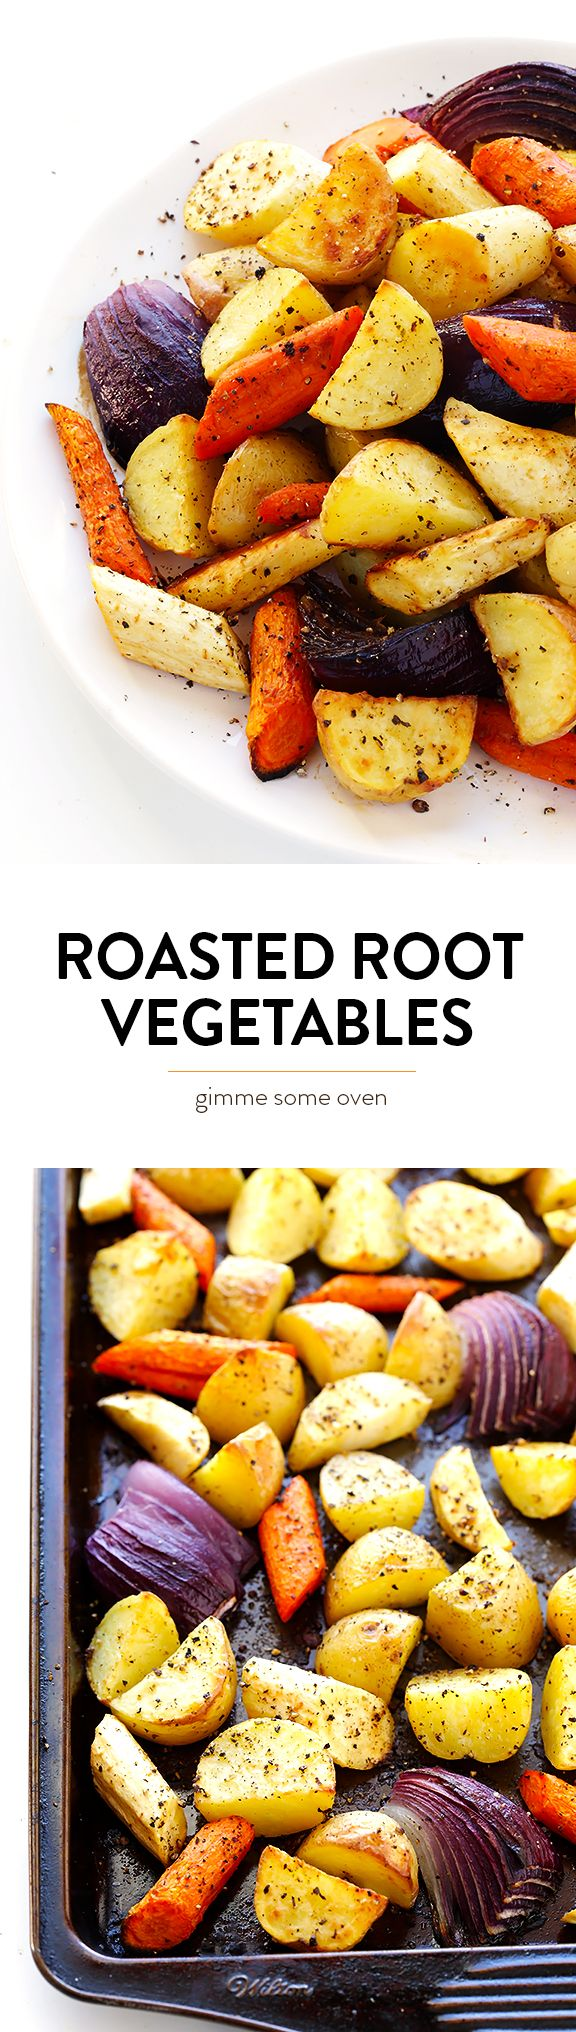 This delicious Roasted Root Vegetables recipe is easy to make, and made extra-delicious with one secret ingredient | gimmesomeoven.com